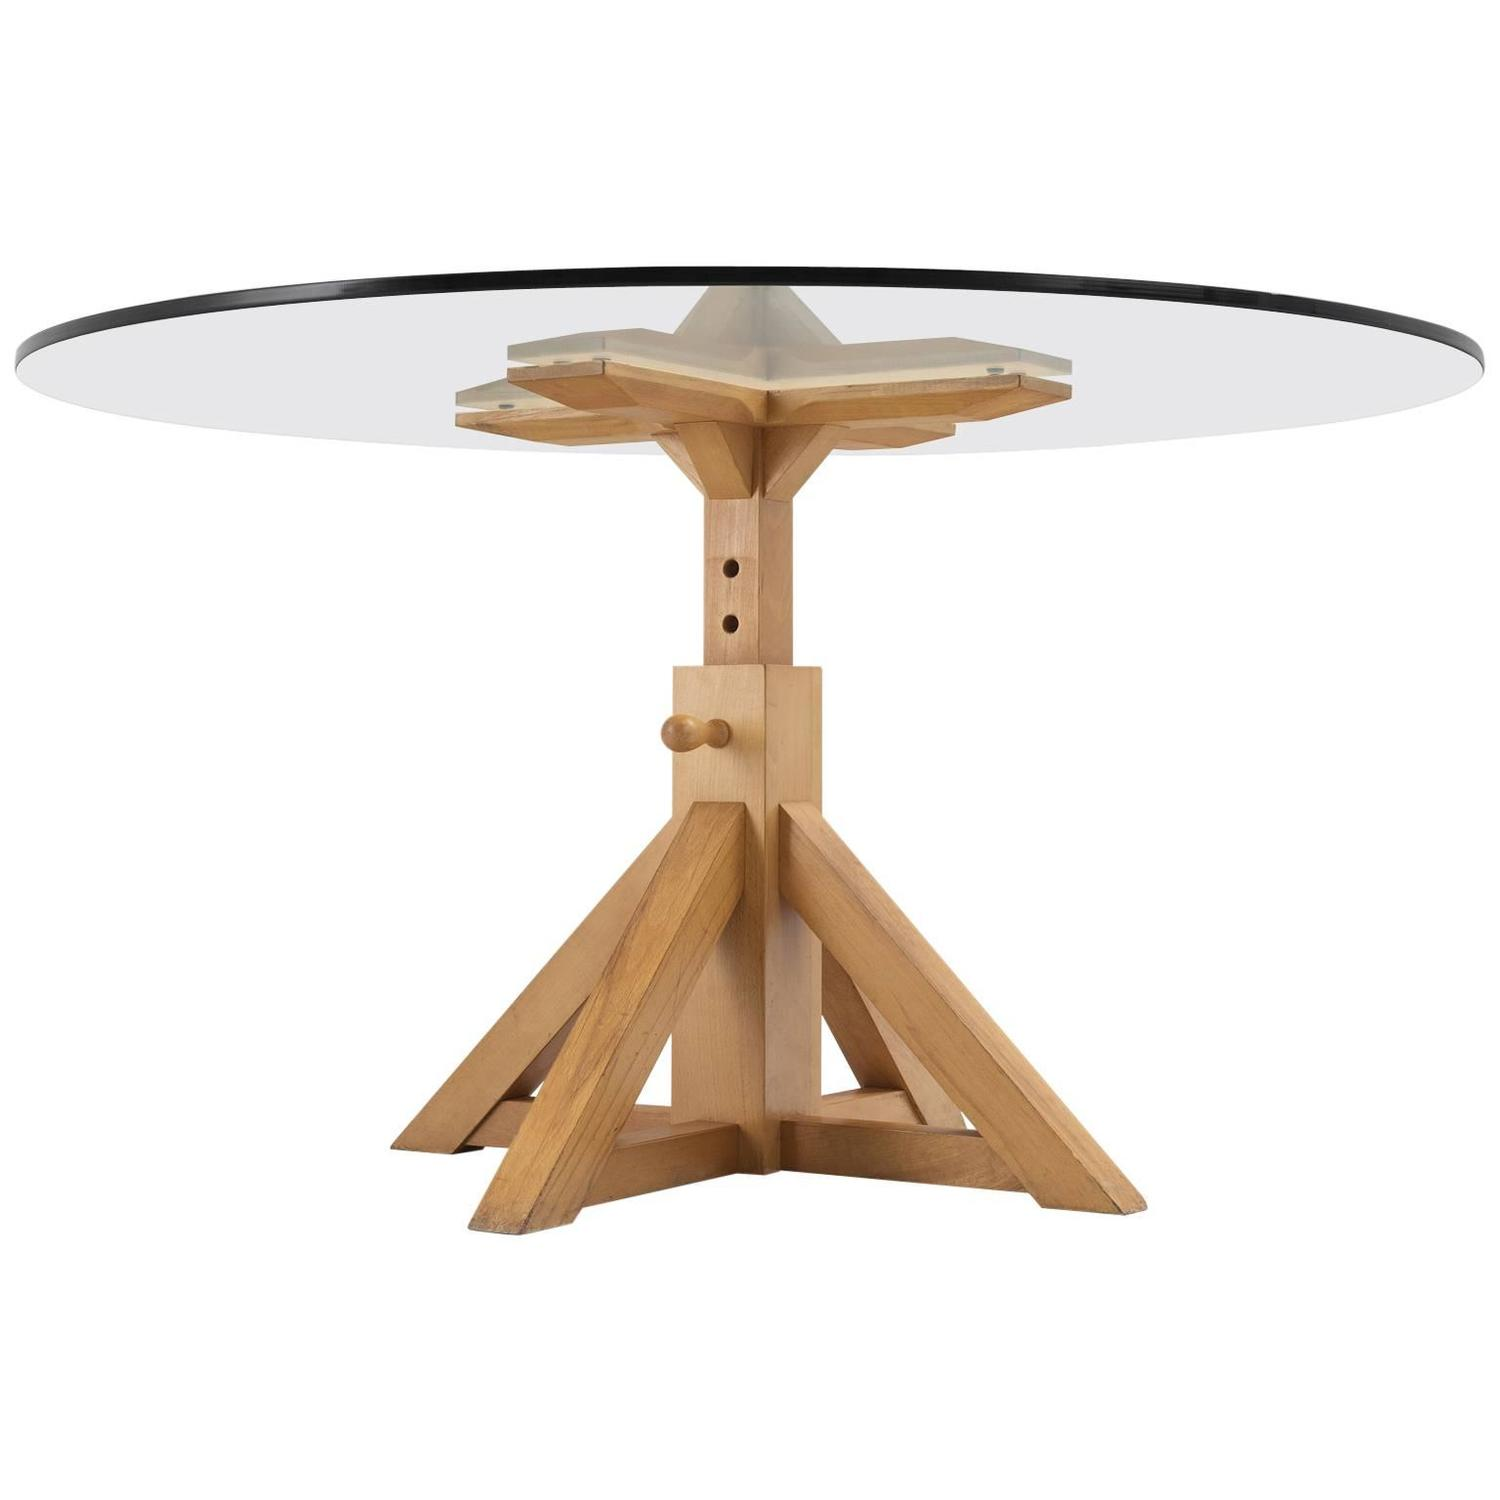 Pedestal Dining Table with Height Adjustable Wooden Base  : 5895953z from www.1stdibs.com size 1500 x 1500 jpeg 50kB